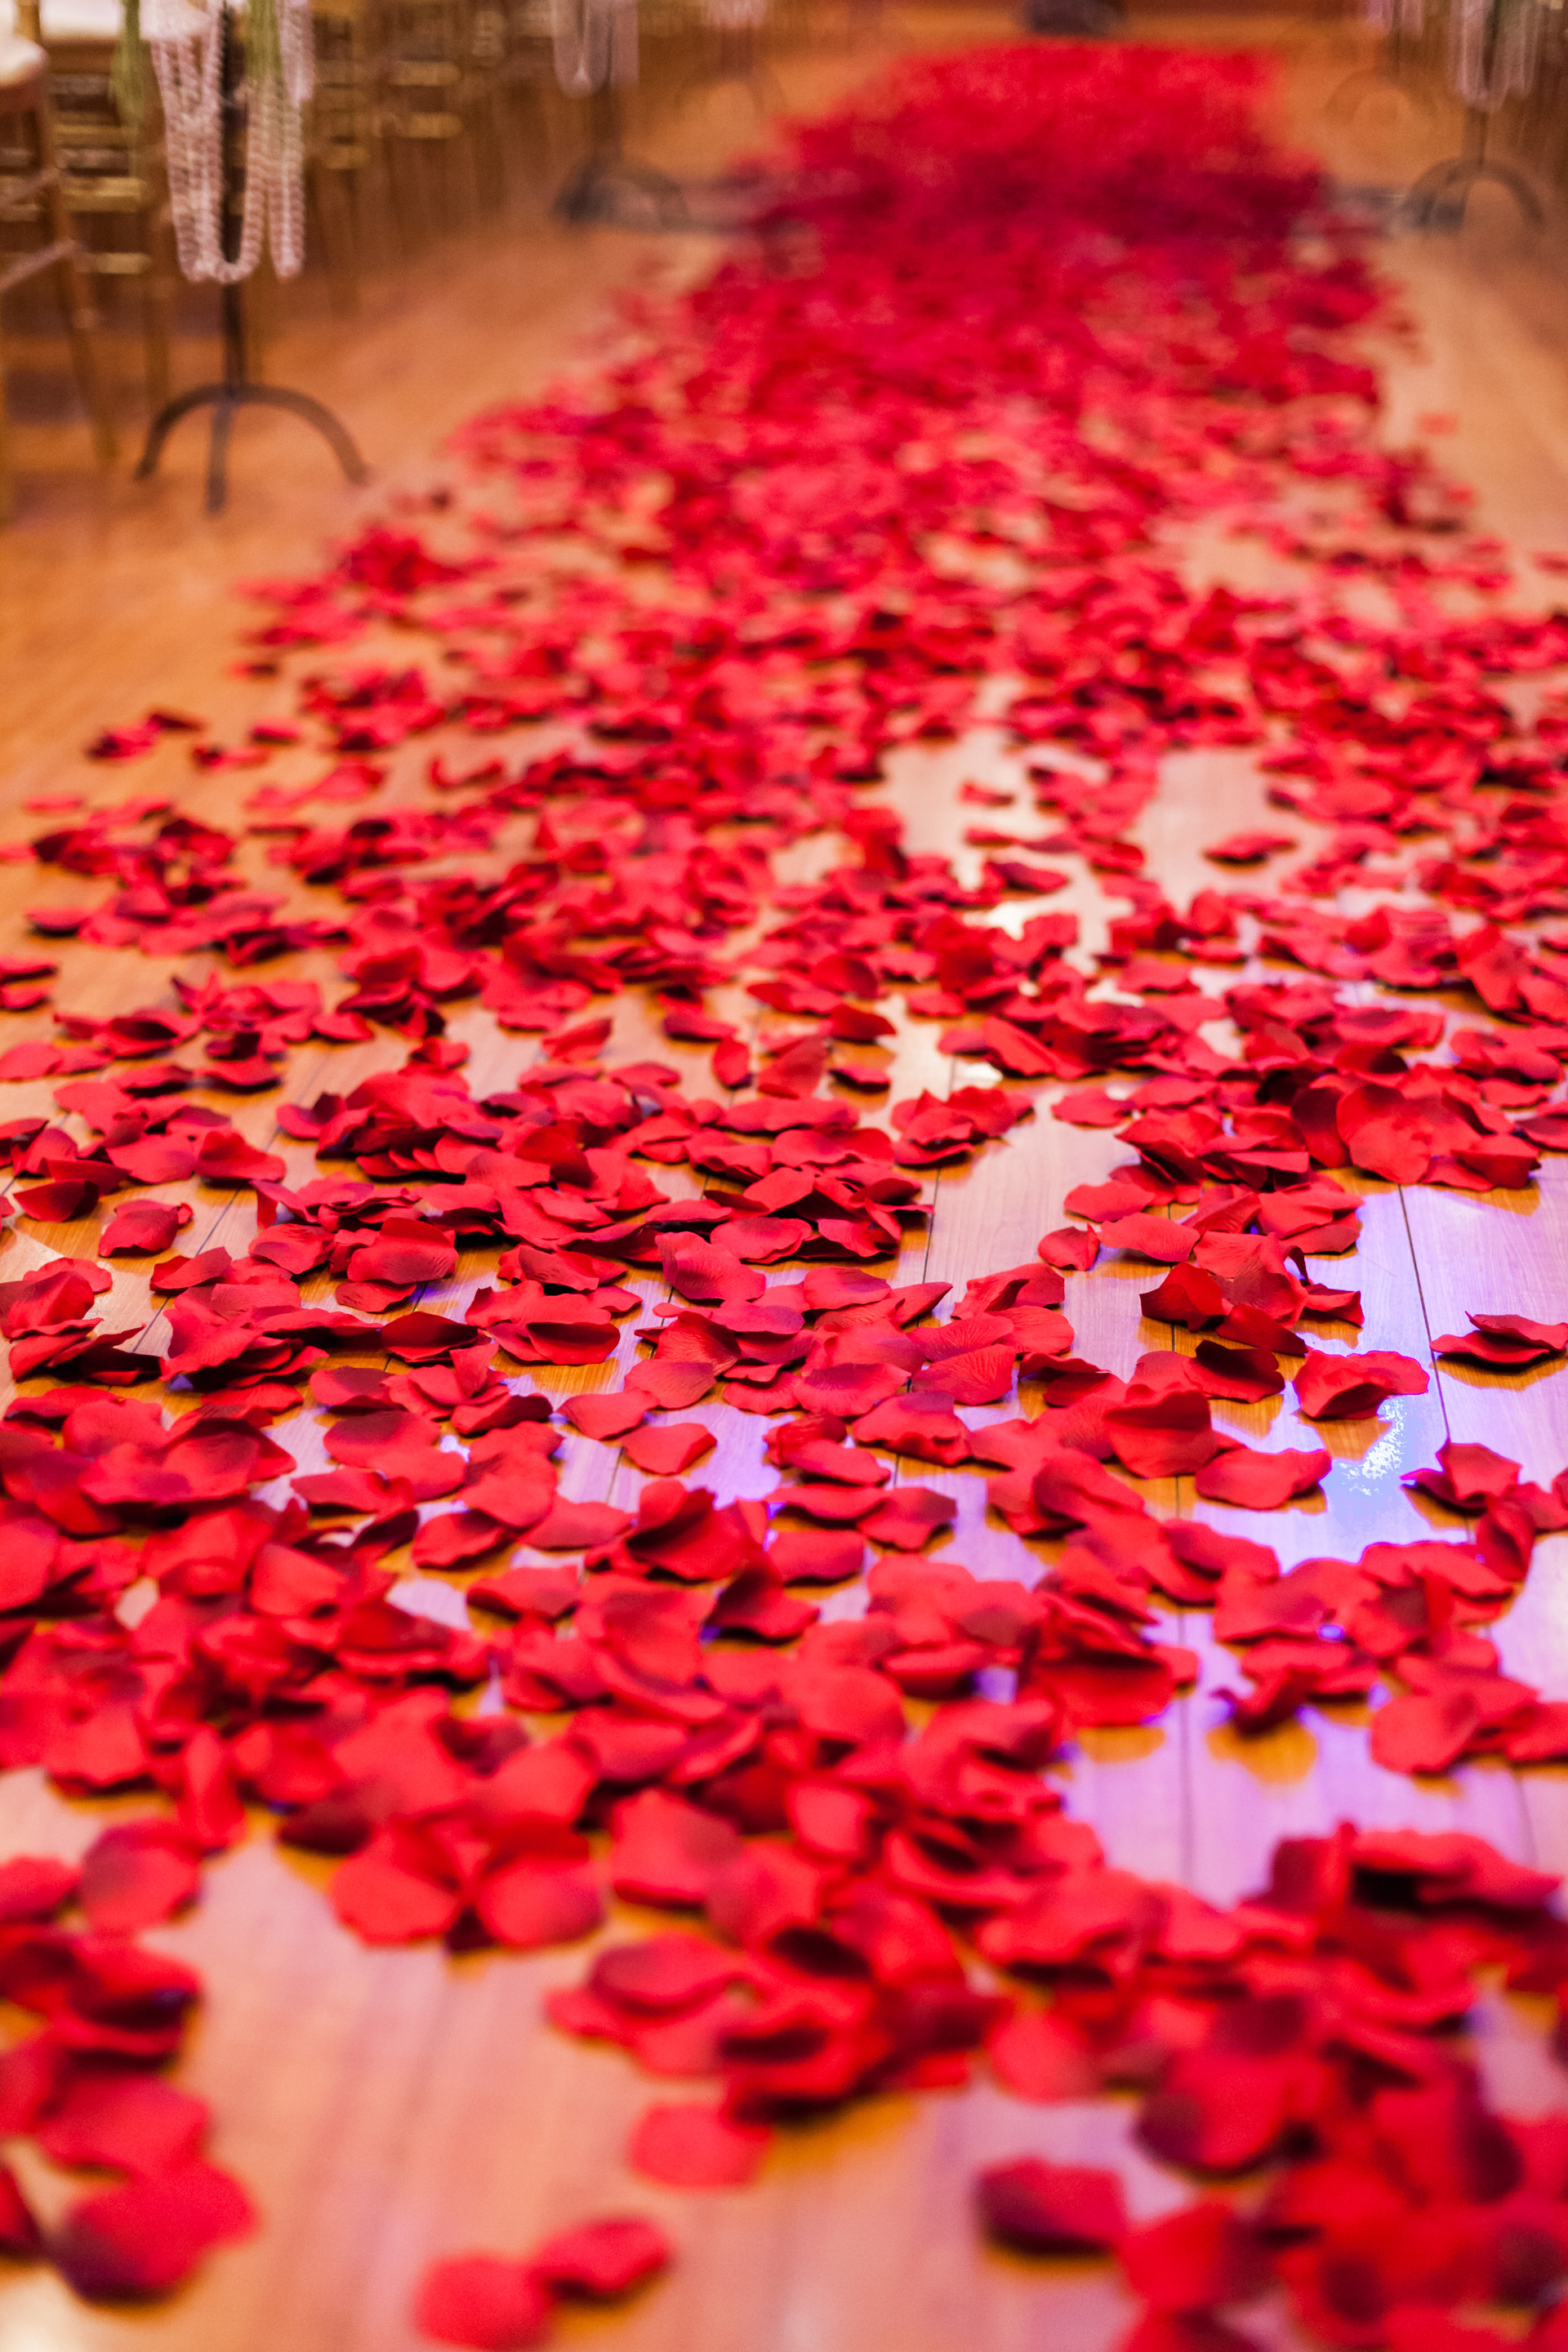 Epic-wedding-in-los-angeles-california-weddings-red-rose-petal-covered-ceremony-aisle.original